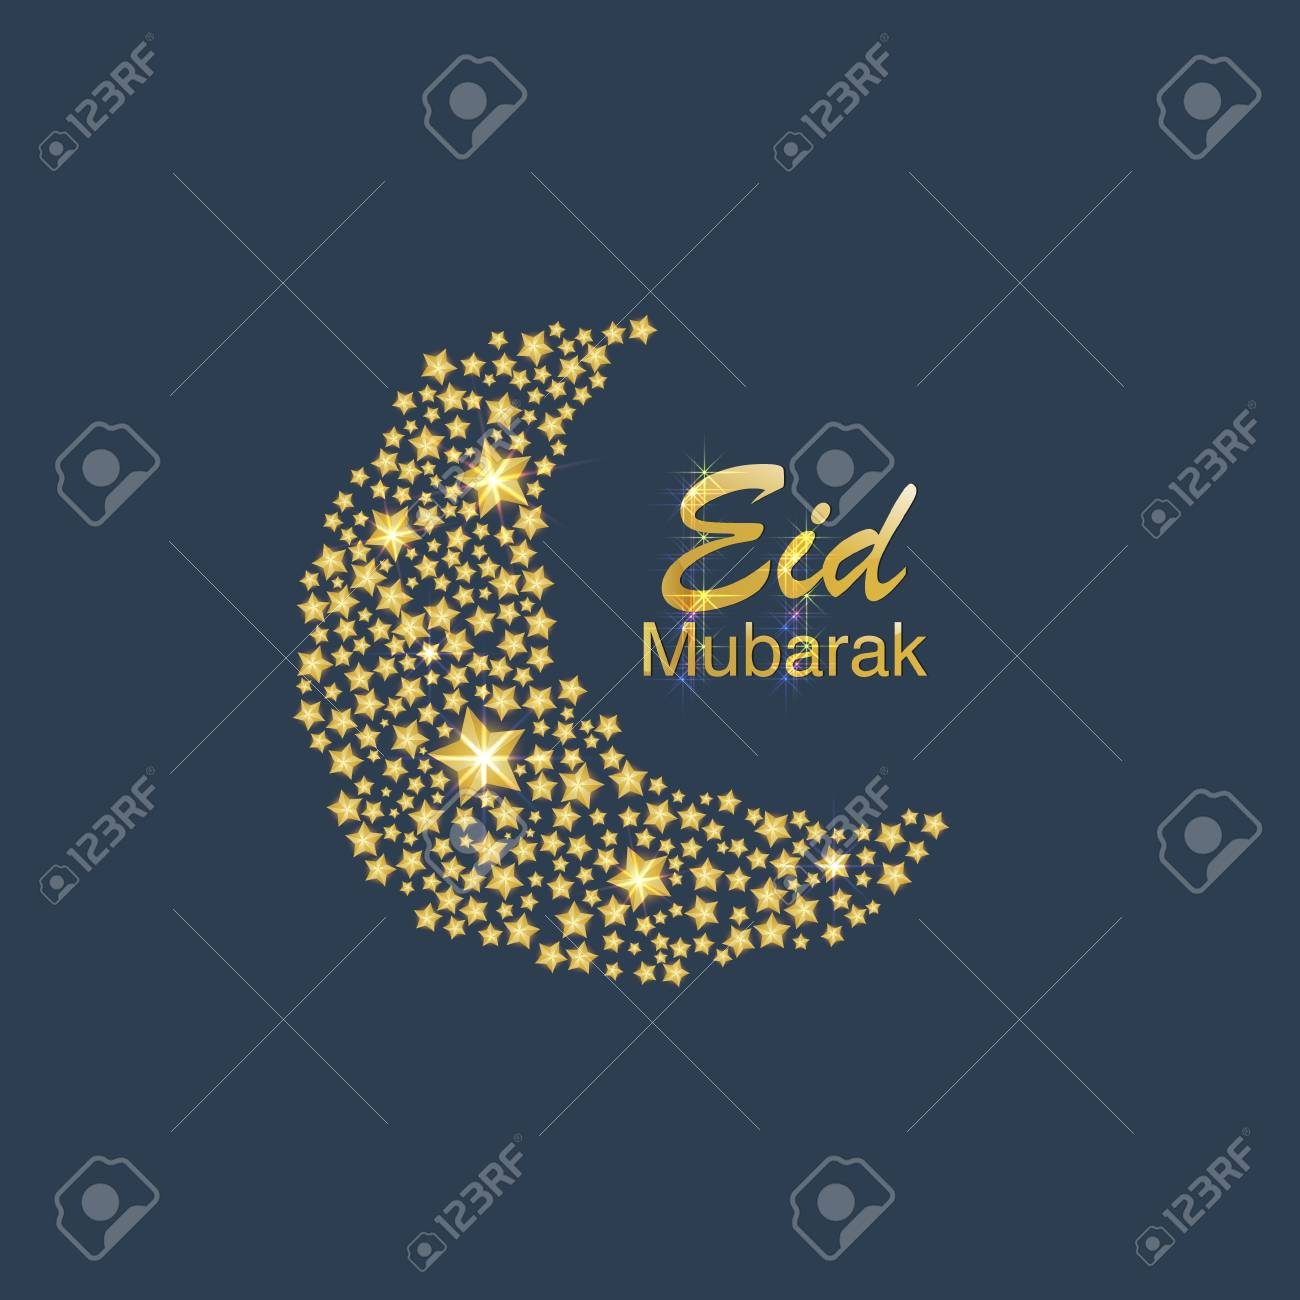 Greeting card template islamic vector design for eid mubarak greeting card template islamic vector design for eid mubarak translation of text eid mubarak m4hsunfo